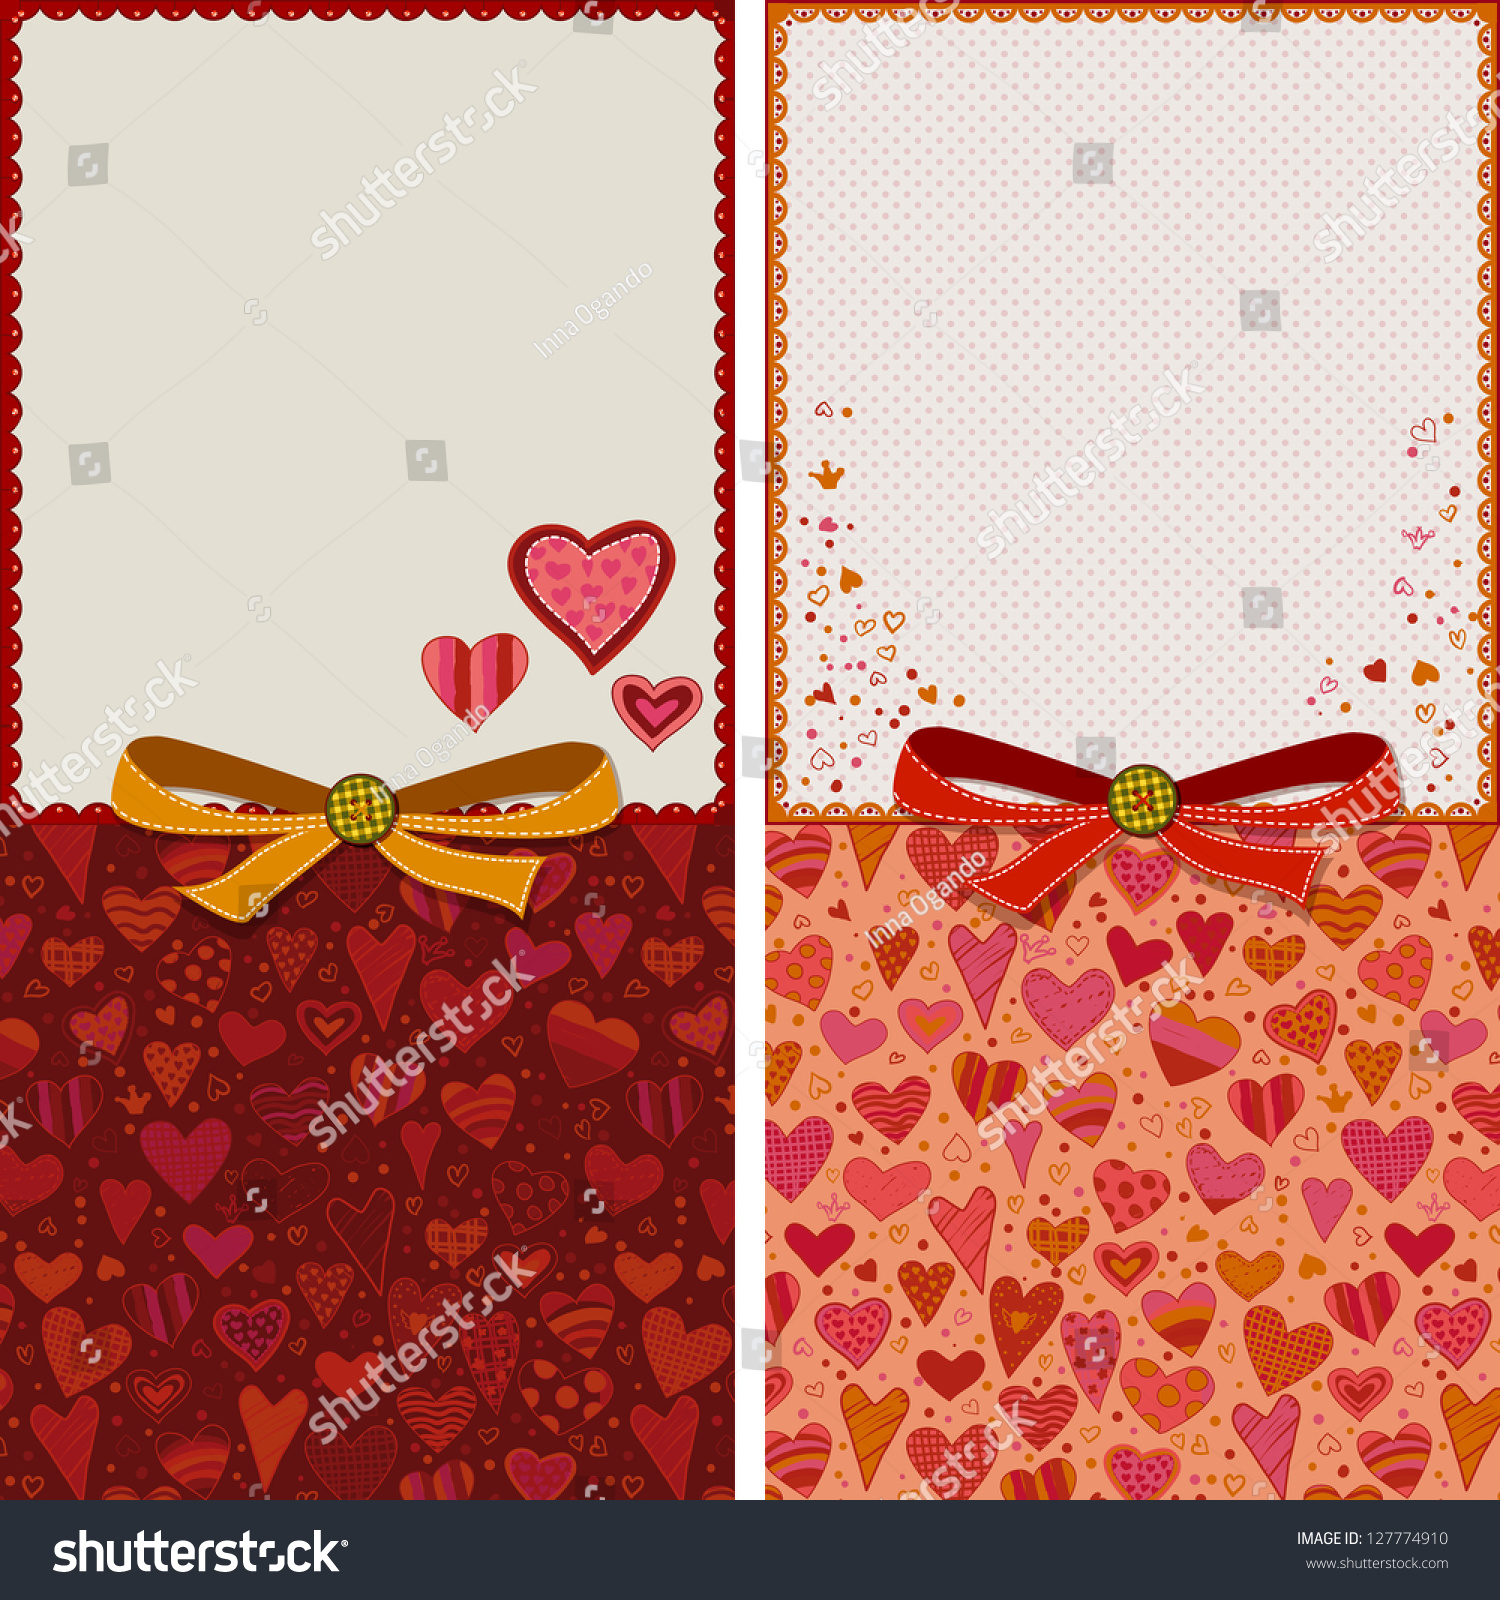 Wedding Valentines Relationship Birthday Anniversary Greeting Stock